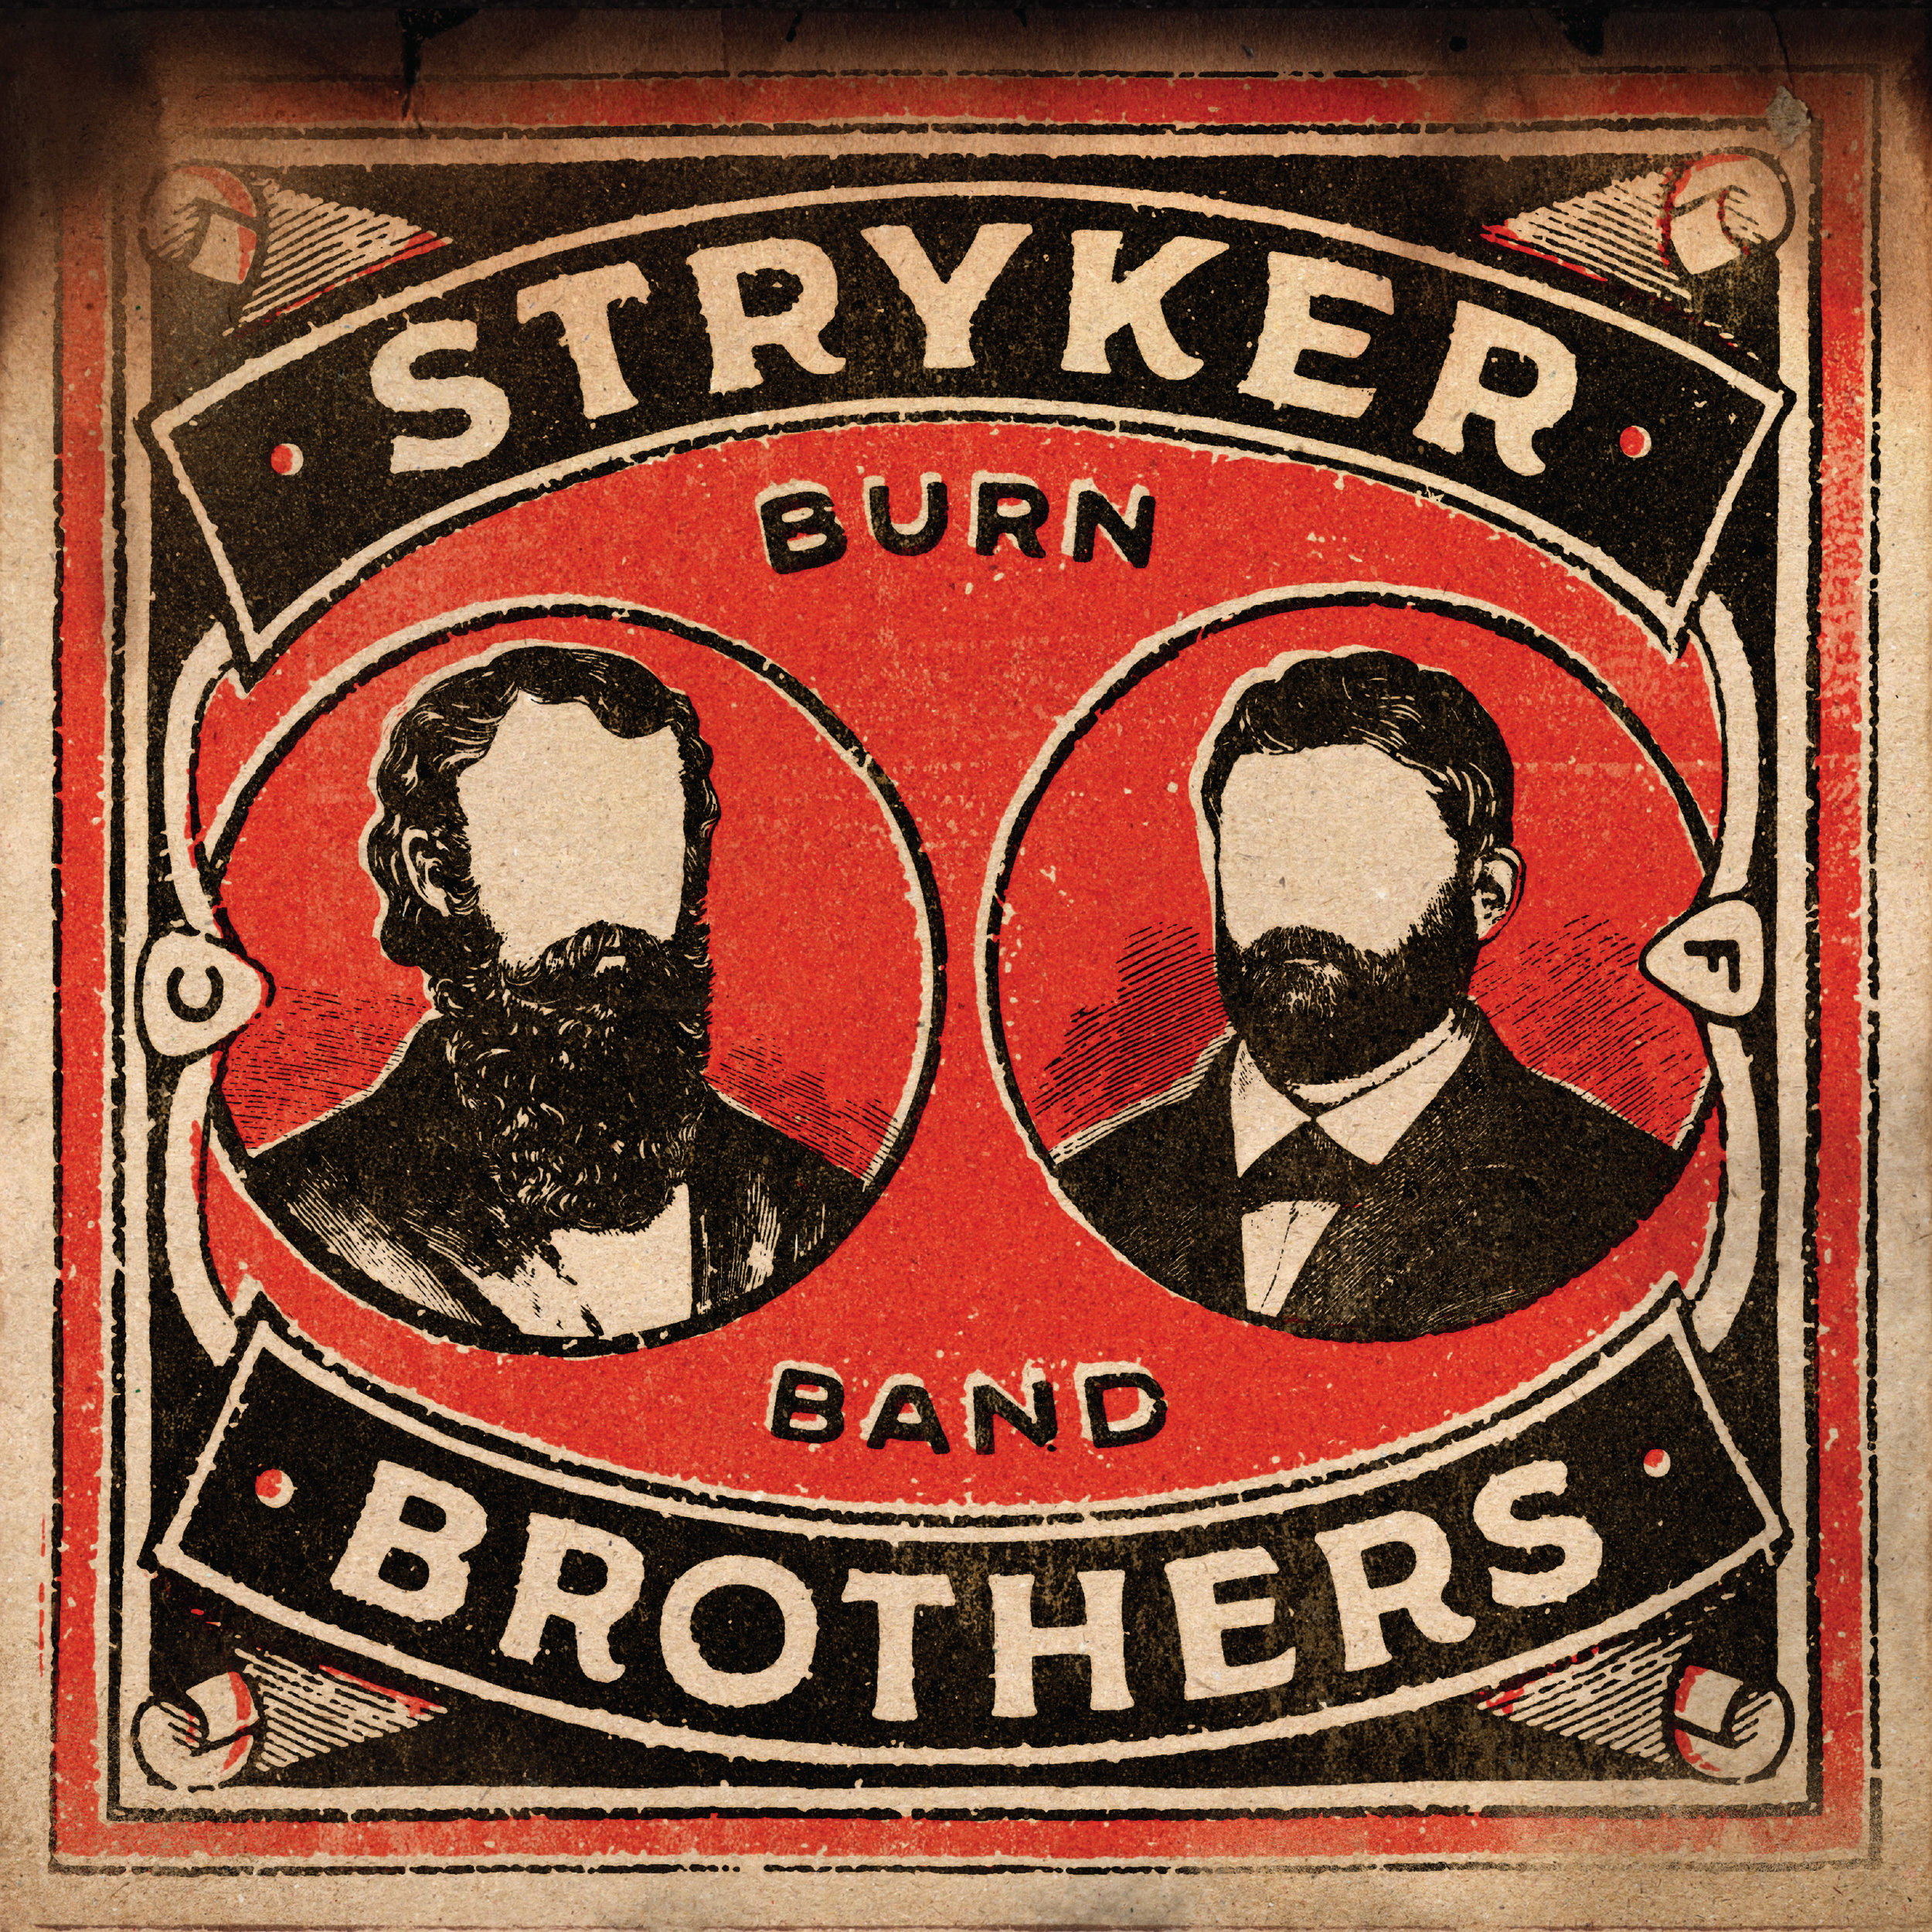 Stryker-Brothers---Digital-Cover-2018---Square--3000x3000-300dpi.jpg